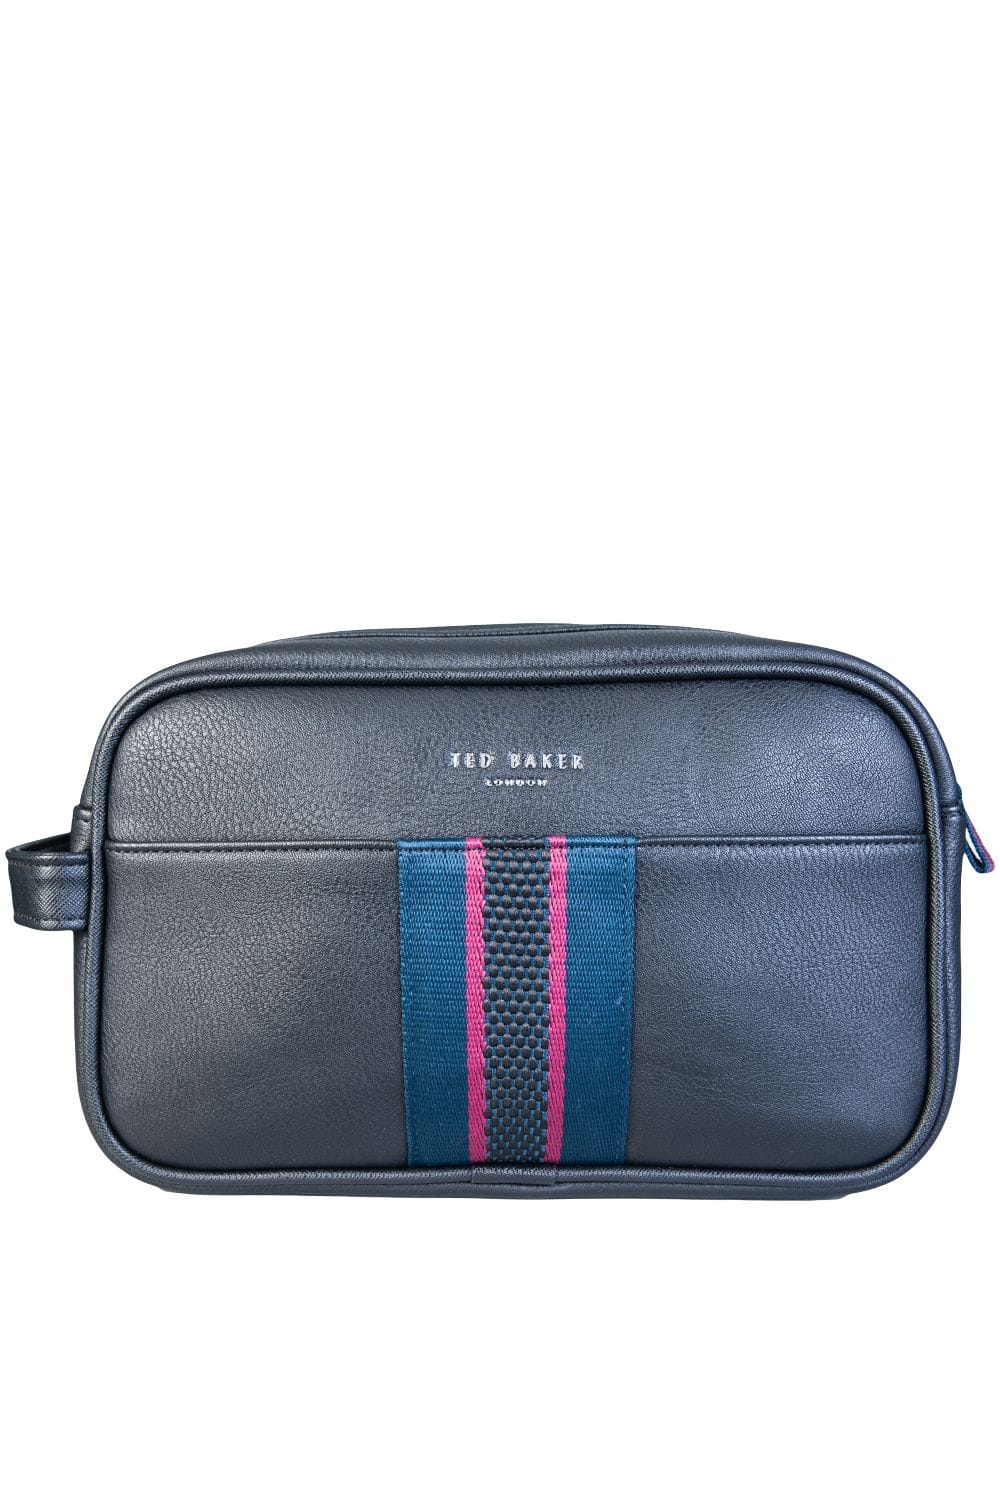 8edbeb5324 Ted Baker Wash Bag with Towel MXG-BENNY - Accessories from Sage ...